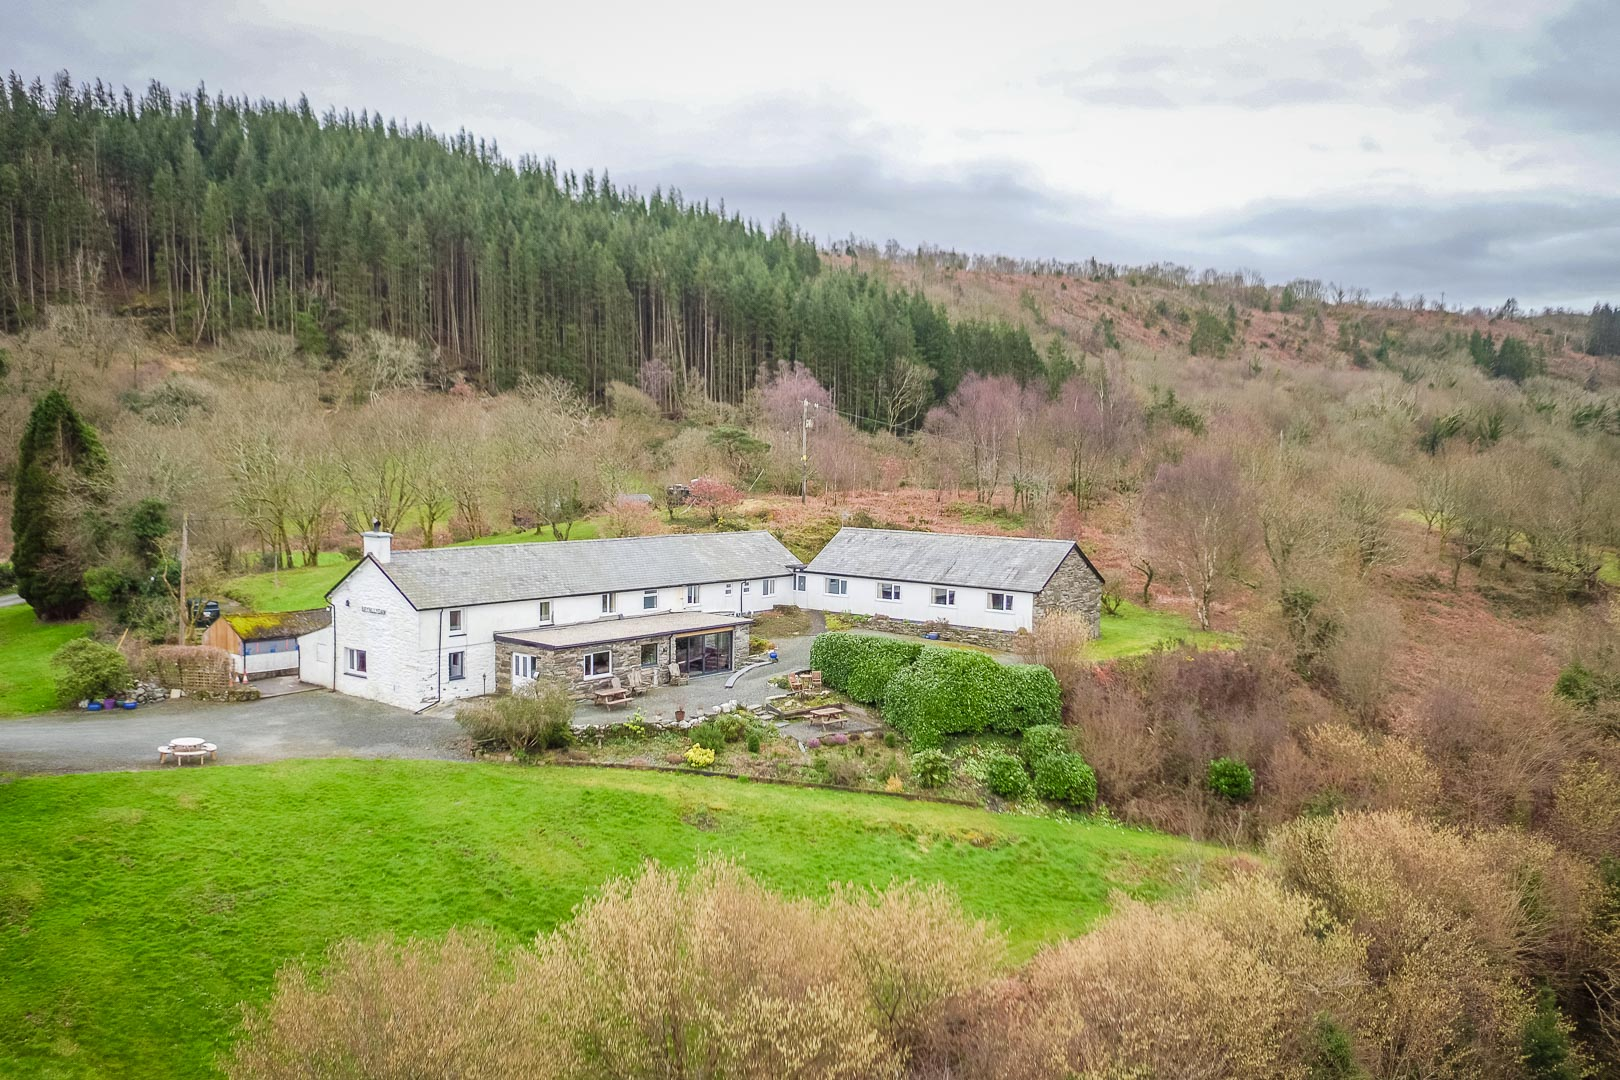 Holiday Cottage For Large Groups in Snowdonia | Llety-Llyn